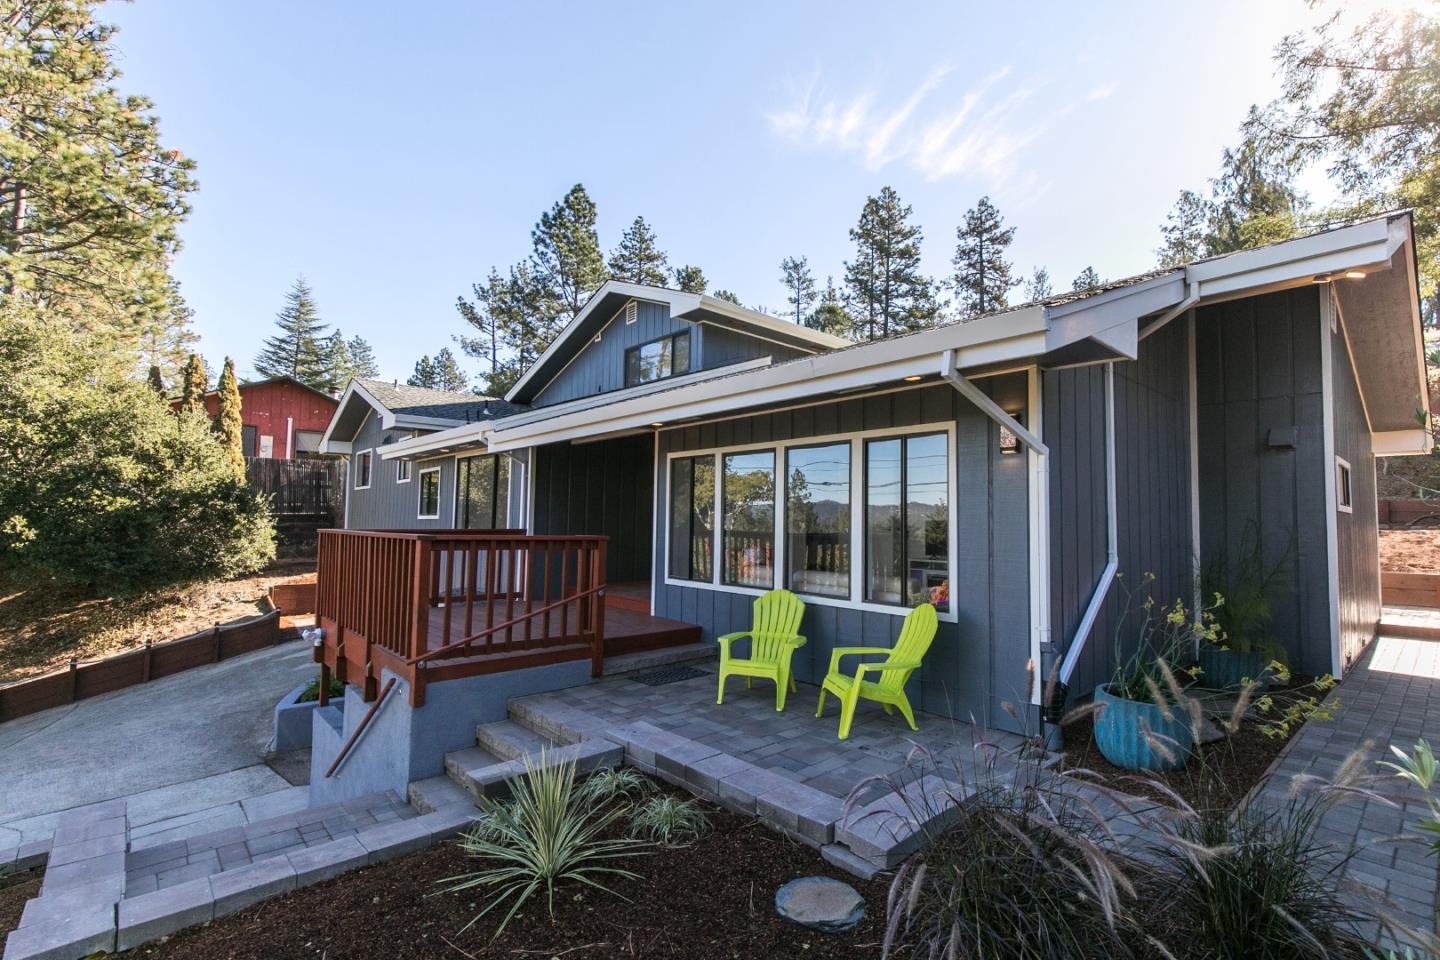 Sparkling contemporary home with loads of natural light, views and style! Located in Scotts Valley, perched on a knoll with a view, this home has been updated and refreshed top to bottom. The large Family room with vaulted ceilings and fireplace opens on to the backyard and the bright kitchen with quartz counters, island and bar. The dining room has a killer view to the north of the Santa Cruz Mountains in the distance. There are 3 bedrooms on the ground floor and 2 bathrooms. The Master is perched upstairs with amazing views to the north and south. Master bathroom is clean and bright has been refreshed and updated. There are decks and patios that surround the home with plenty of room for a sunny south facing garden. This home is ready to move in and enjoy! Take advantage of the Scotts Valley lifestyle with easy acces to Beaches and Silicon Valley and a revered school system.